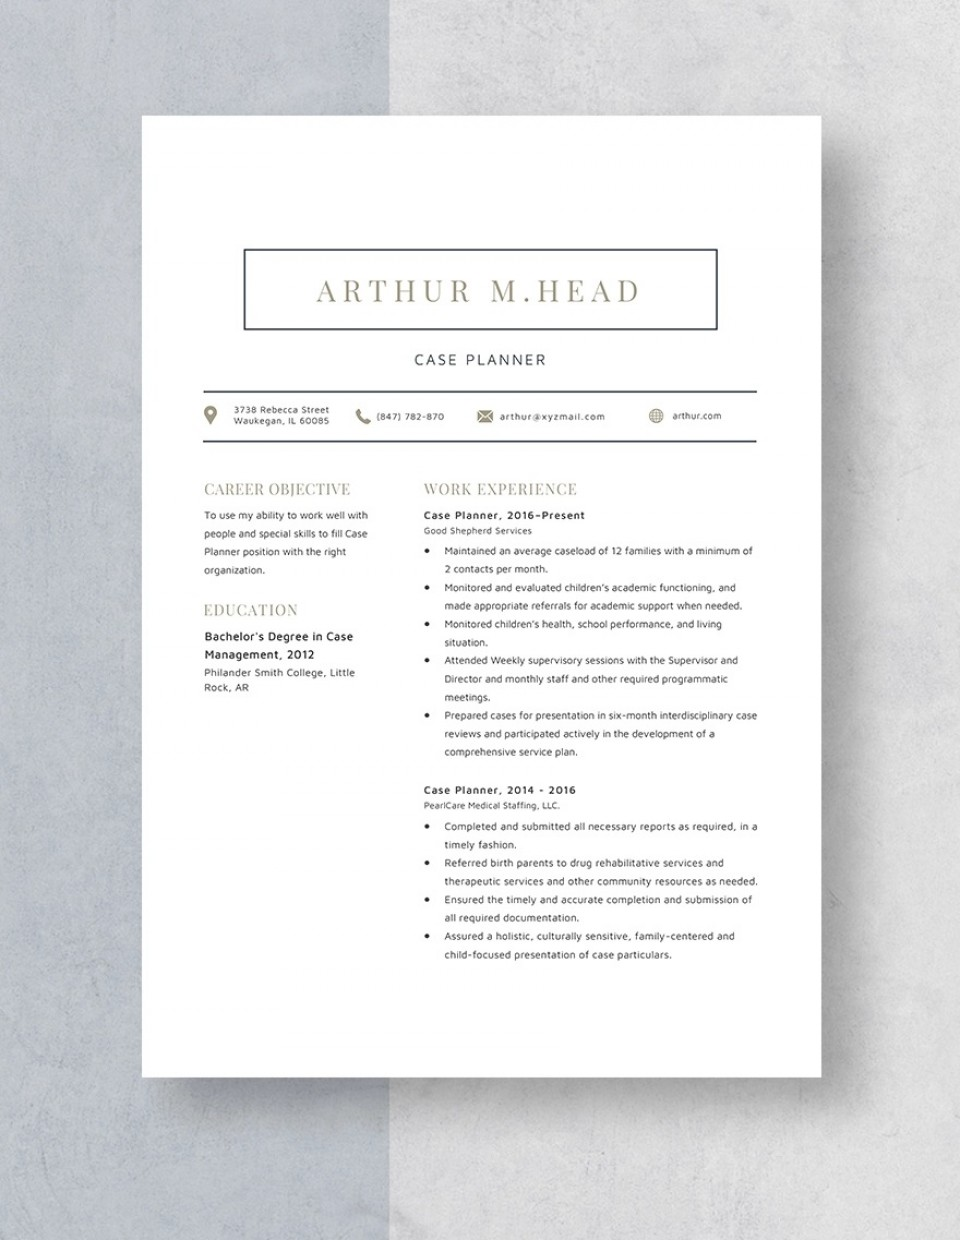 Template Case Planner Resume Idea 960